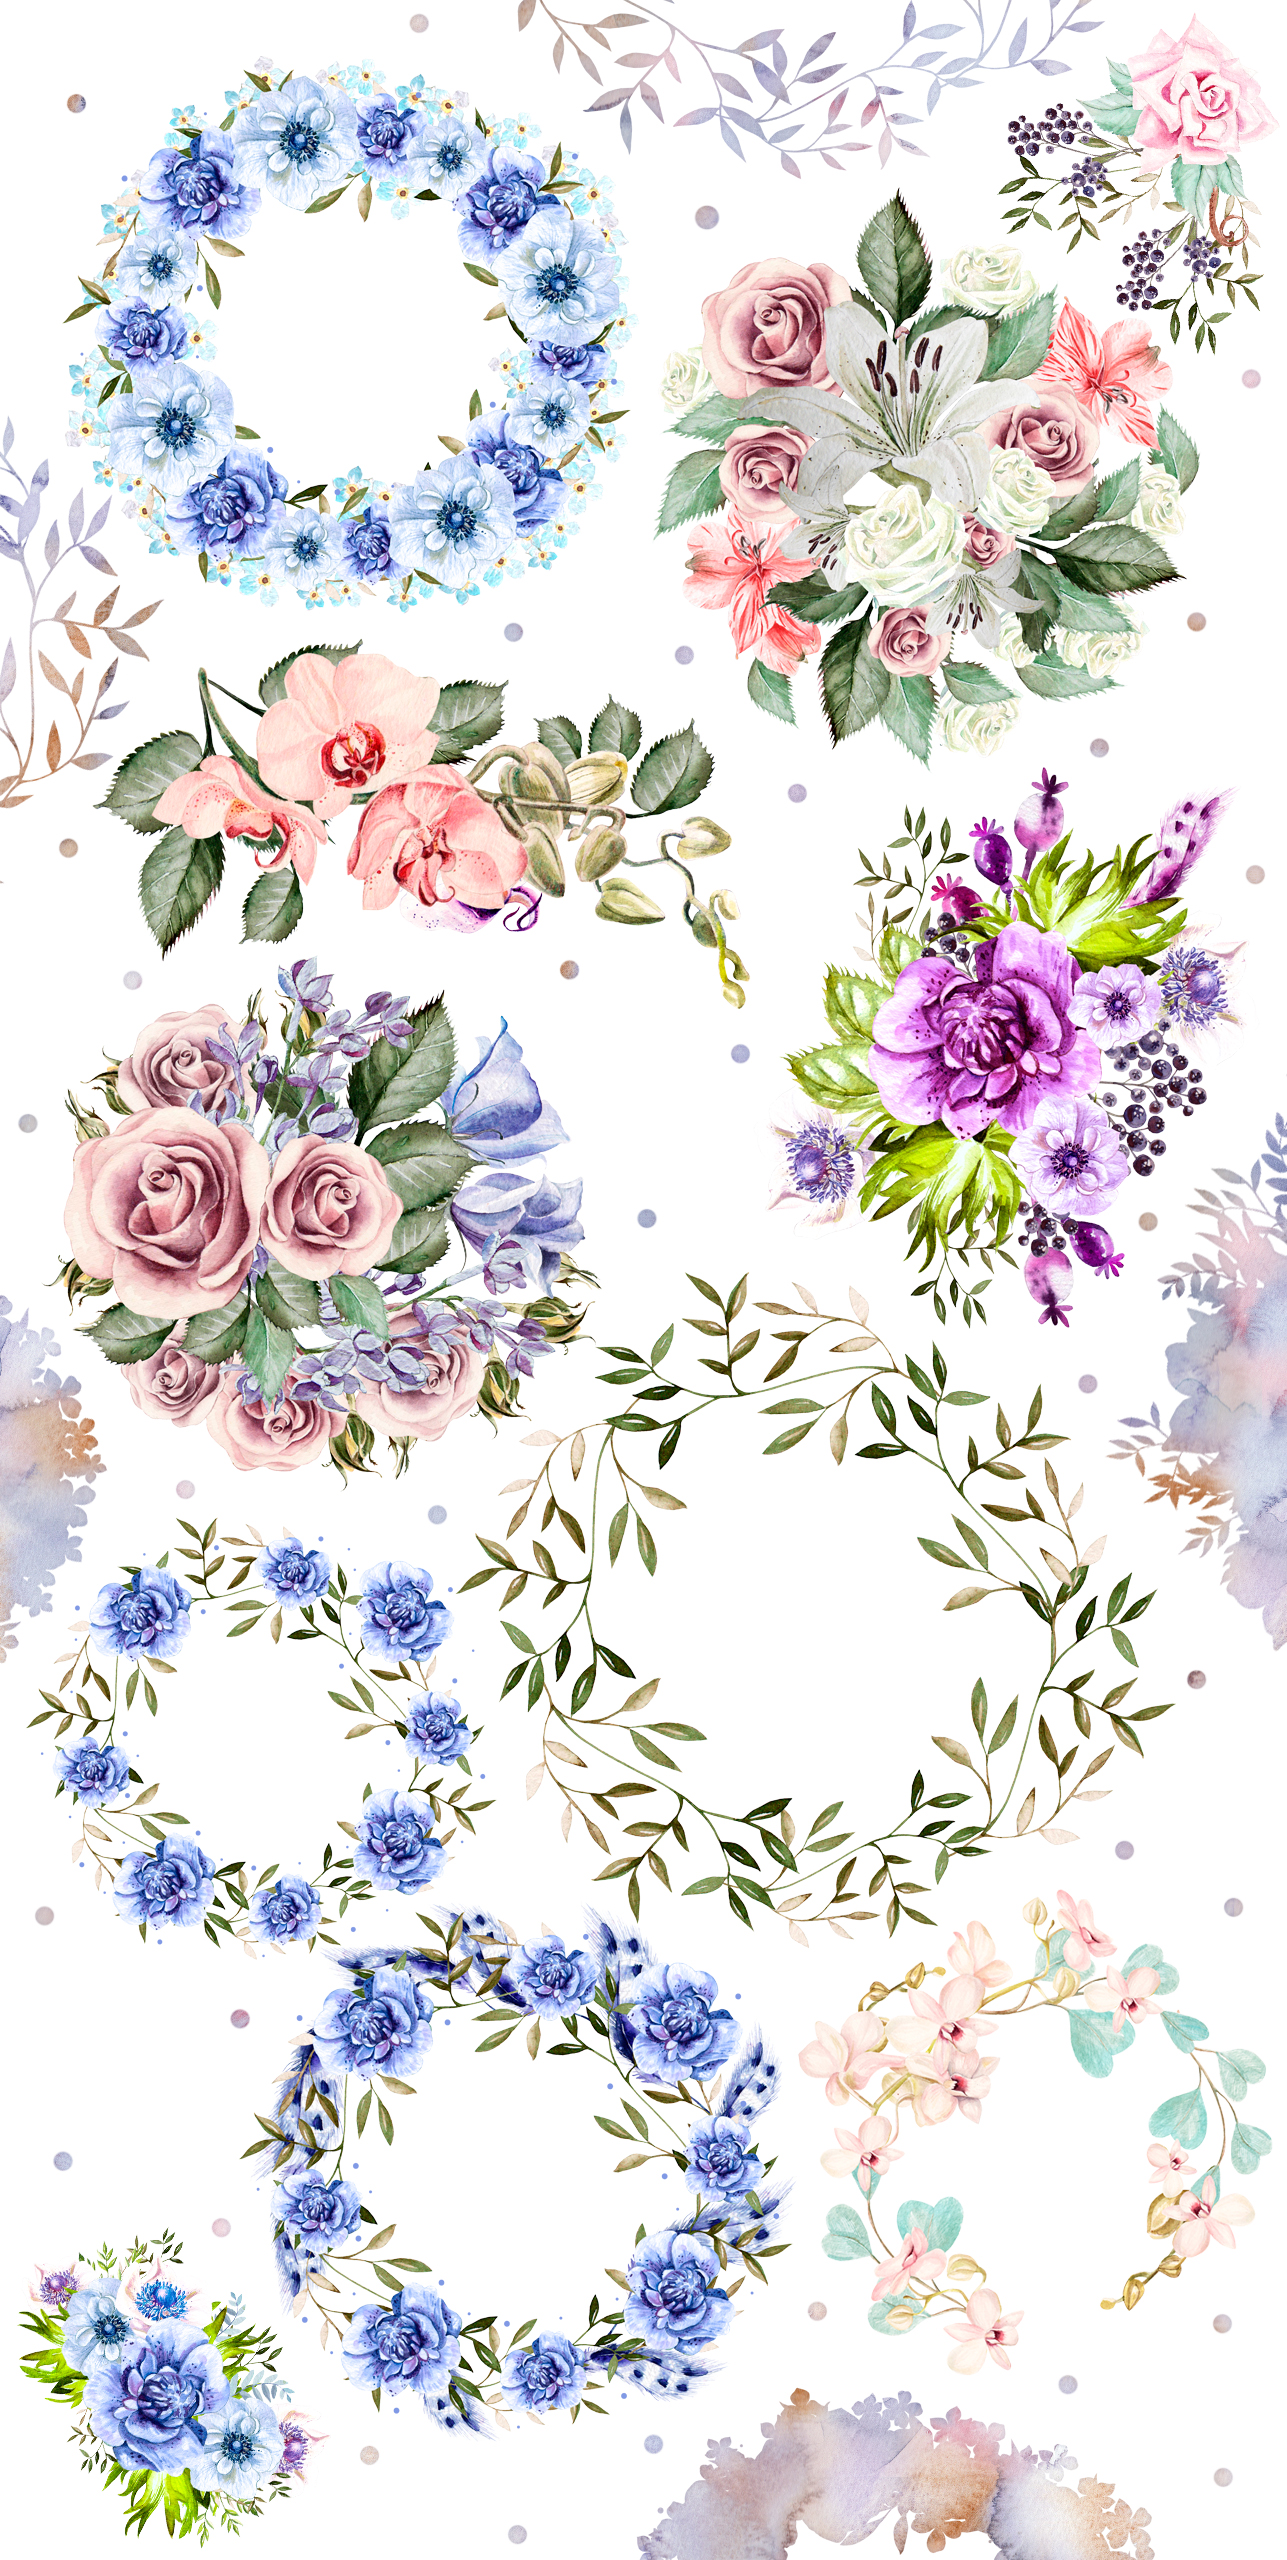 Watercolor Elements & Wreath example image 5